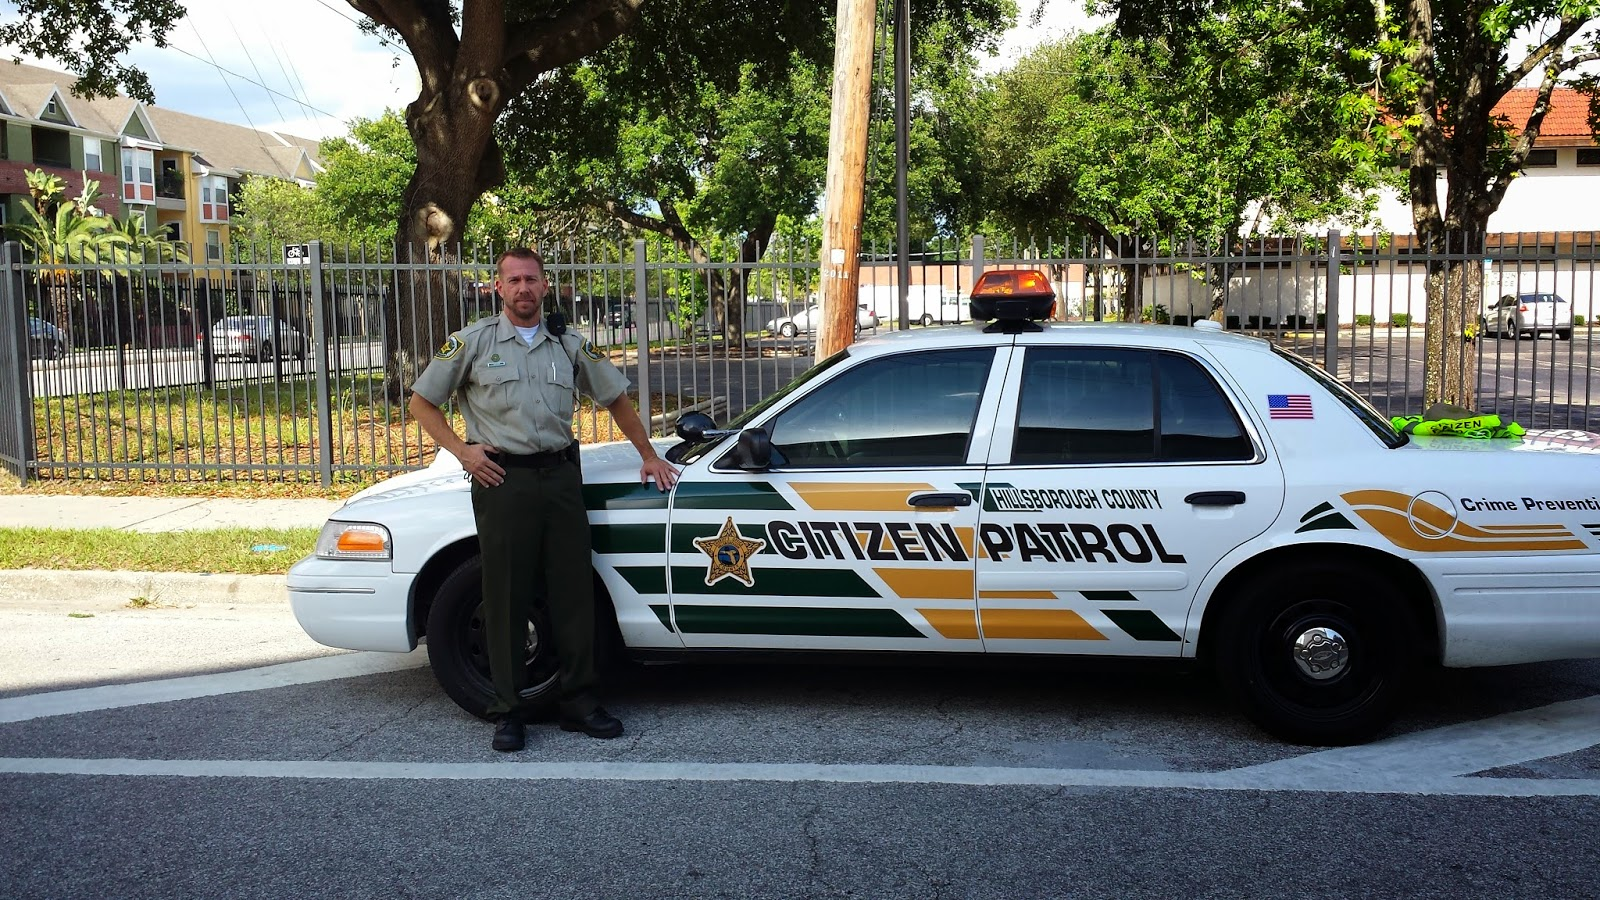 Does Driving A Sheriffu0027s Office Patrol Vehicle Appeal To Your Sense Of  Adventure? If So, This Summer There Will Be An Opportunity For You To Help  Your ...